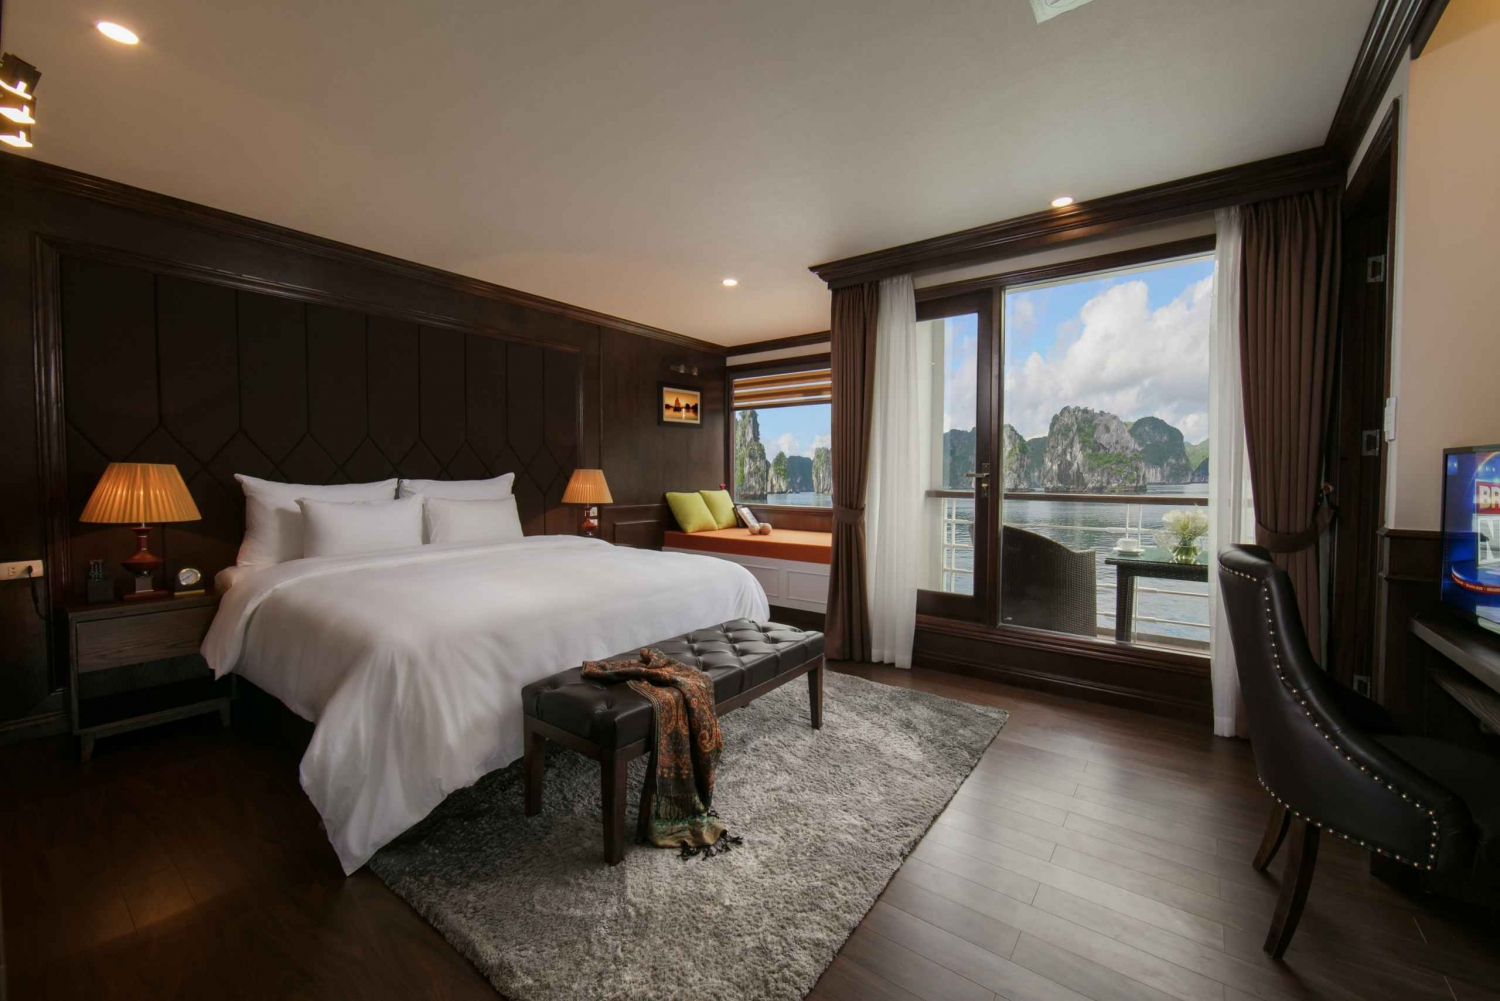 Explore Halong & Cat Ba with 3-Day Mon Chéri 5-Star Cruise